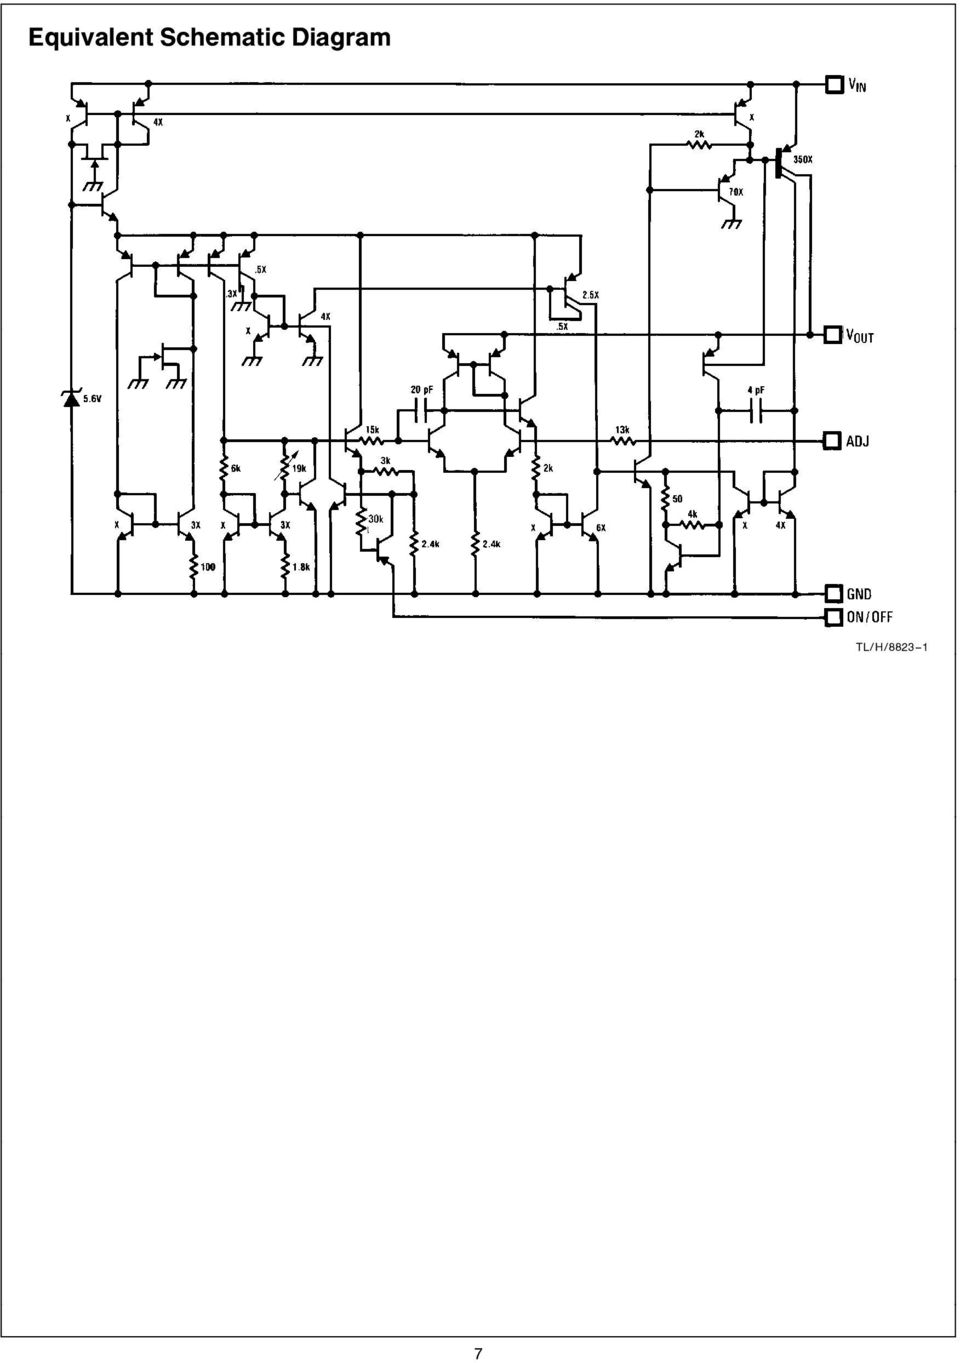 Lm2941 Lm2941c 1a Low Dropout Adjustable Regulator Pdf Very Simple Lead Acid Battery Charger With Pb137 Diagram Tl